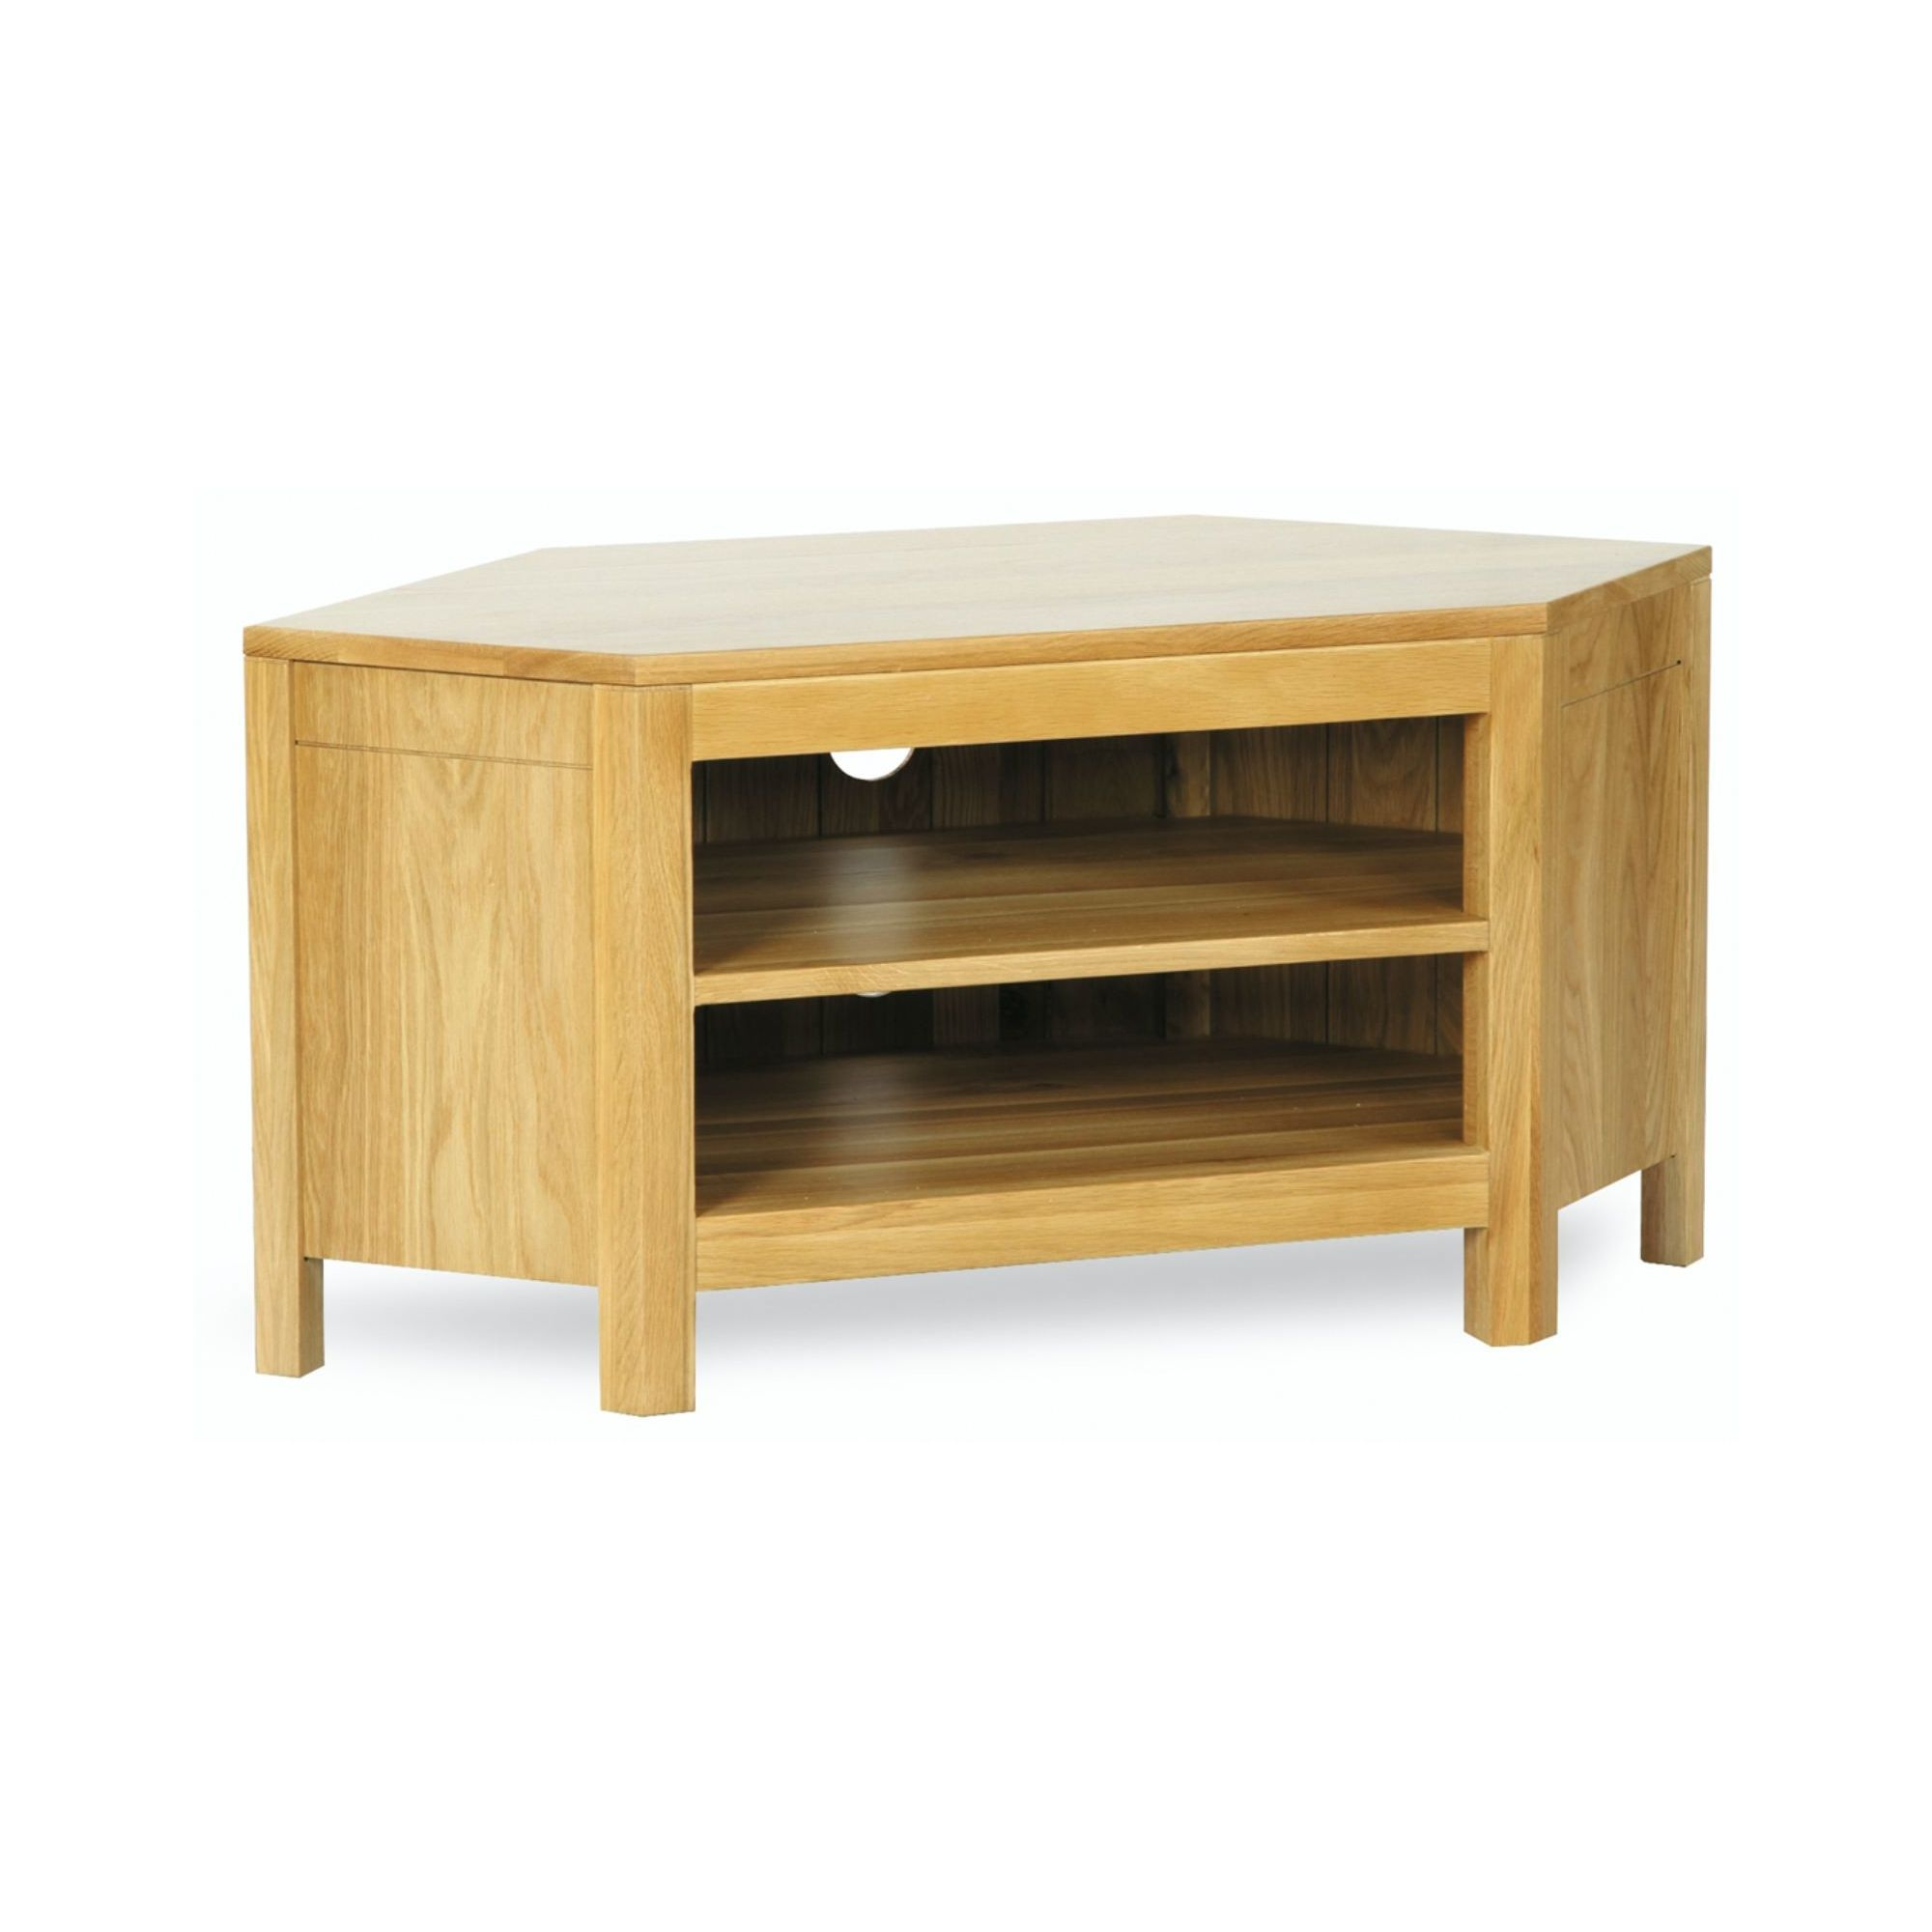 Kelburn Furniture Milano Oak Corner TV Stand at Tesco Direct